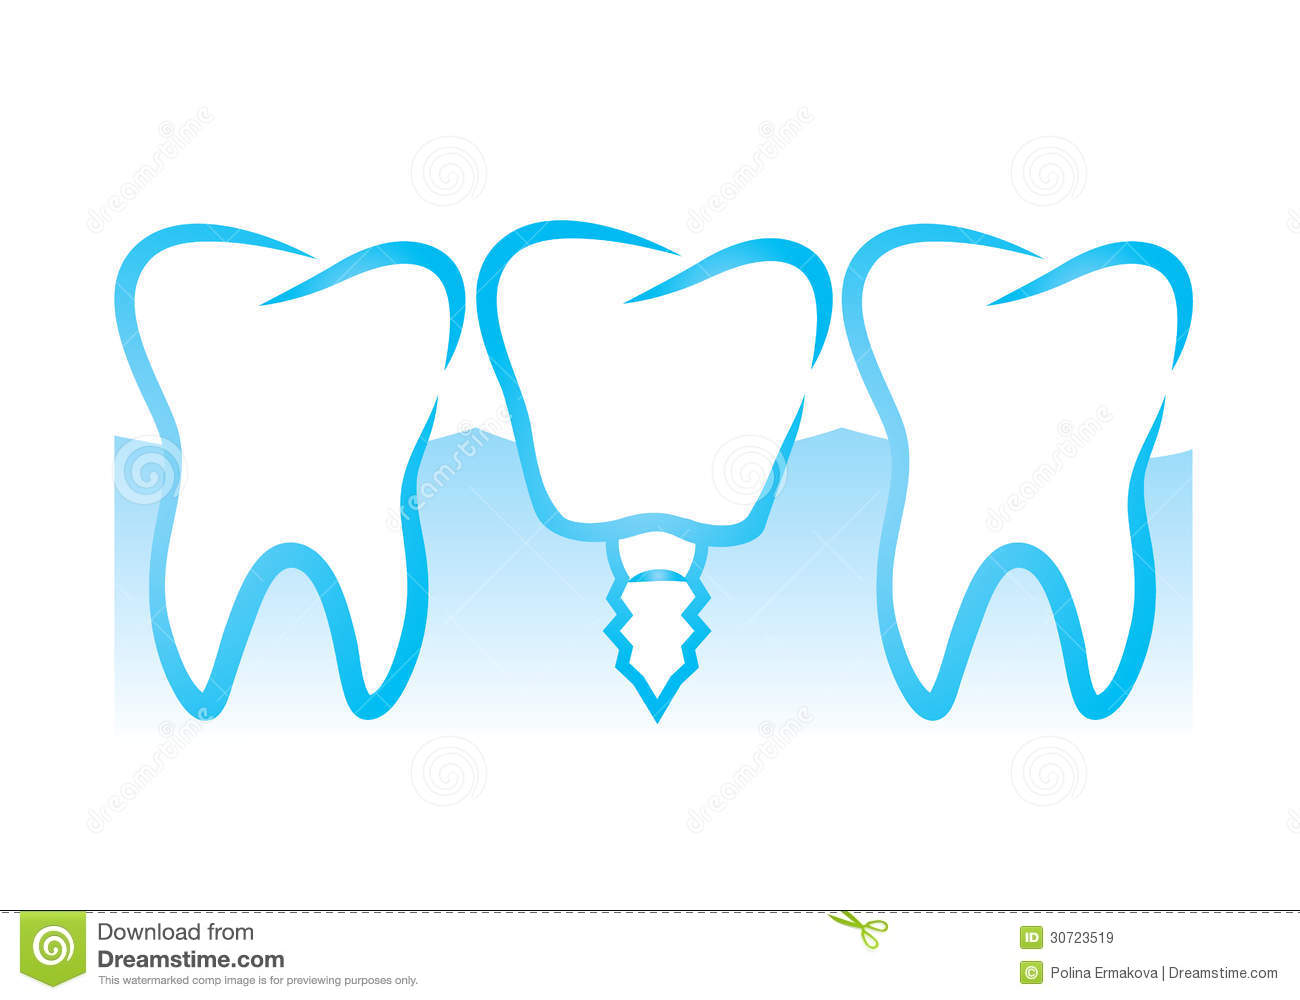 Dental implant clipart svg transparent library Dental Implant Clipart - Free Clipart svg transparent library